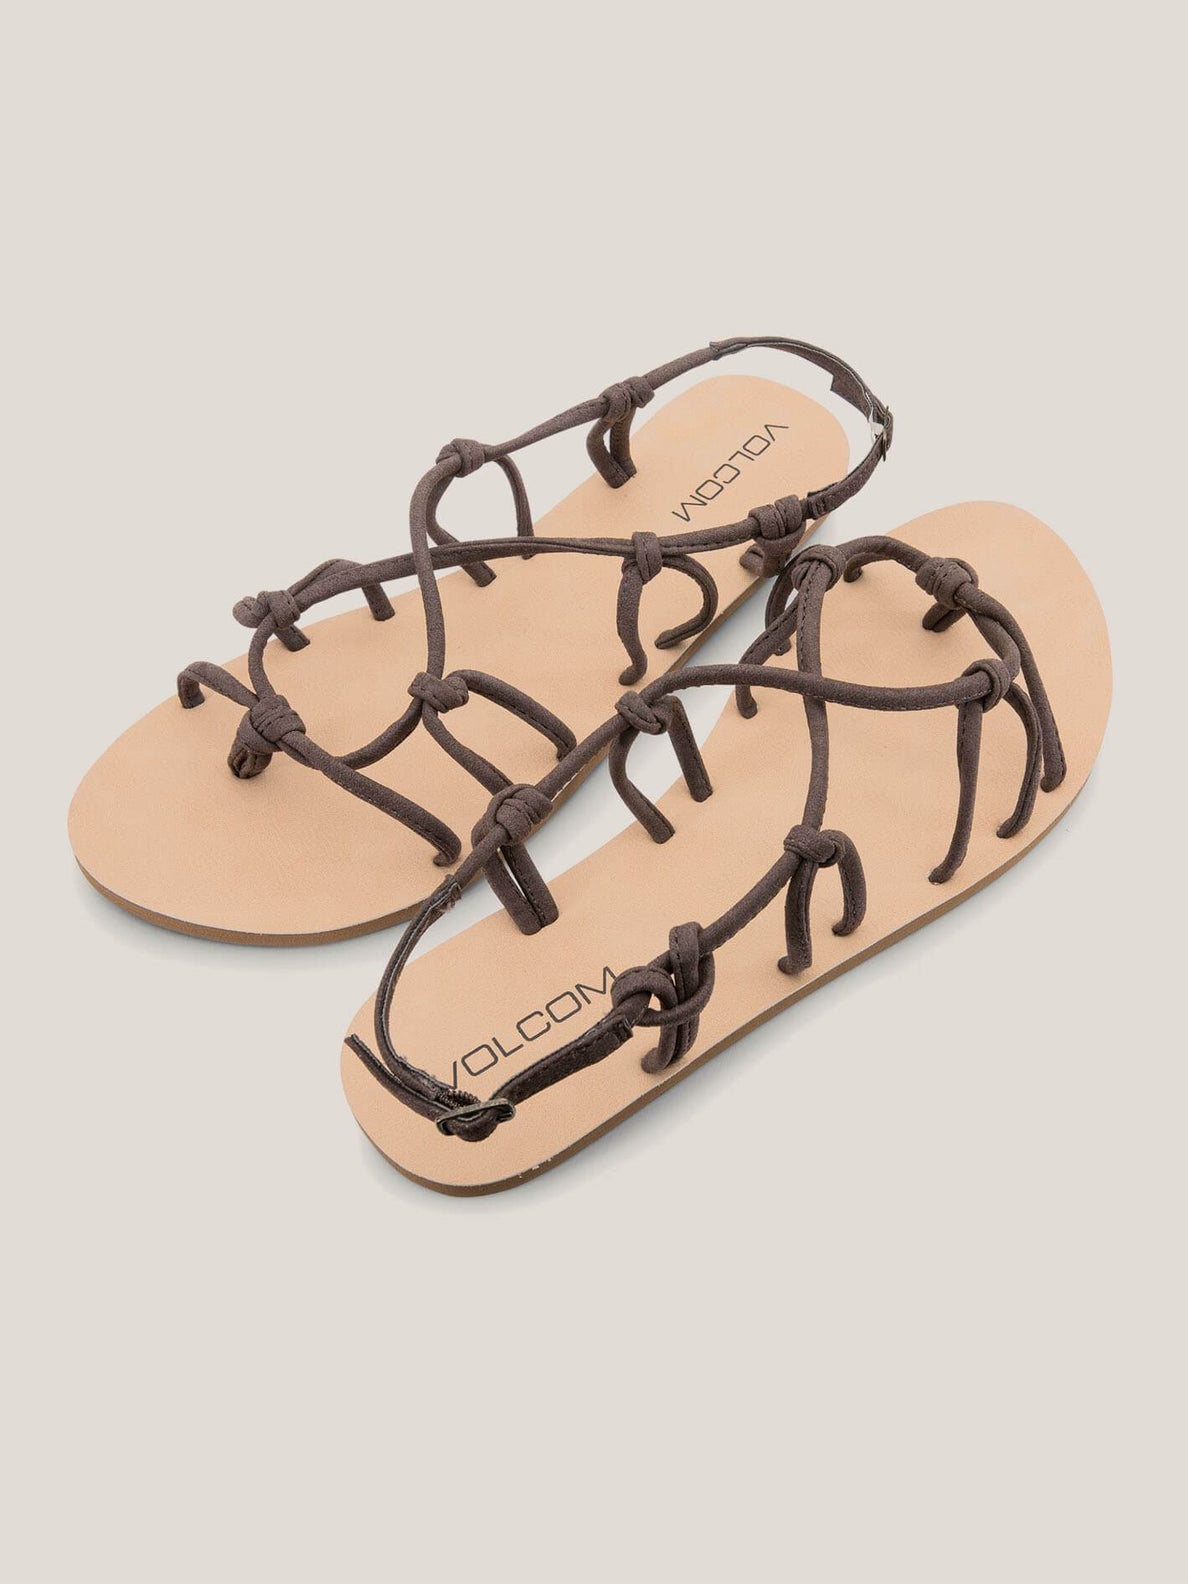 Whateversclever Sandals In Brown, Front View